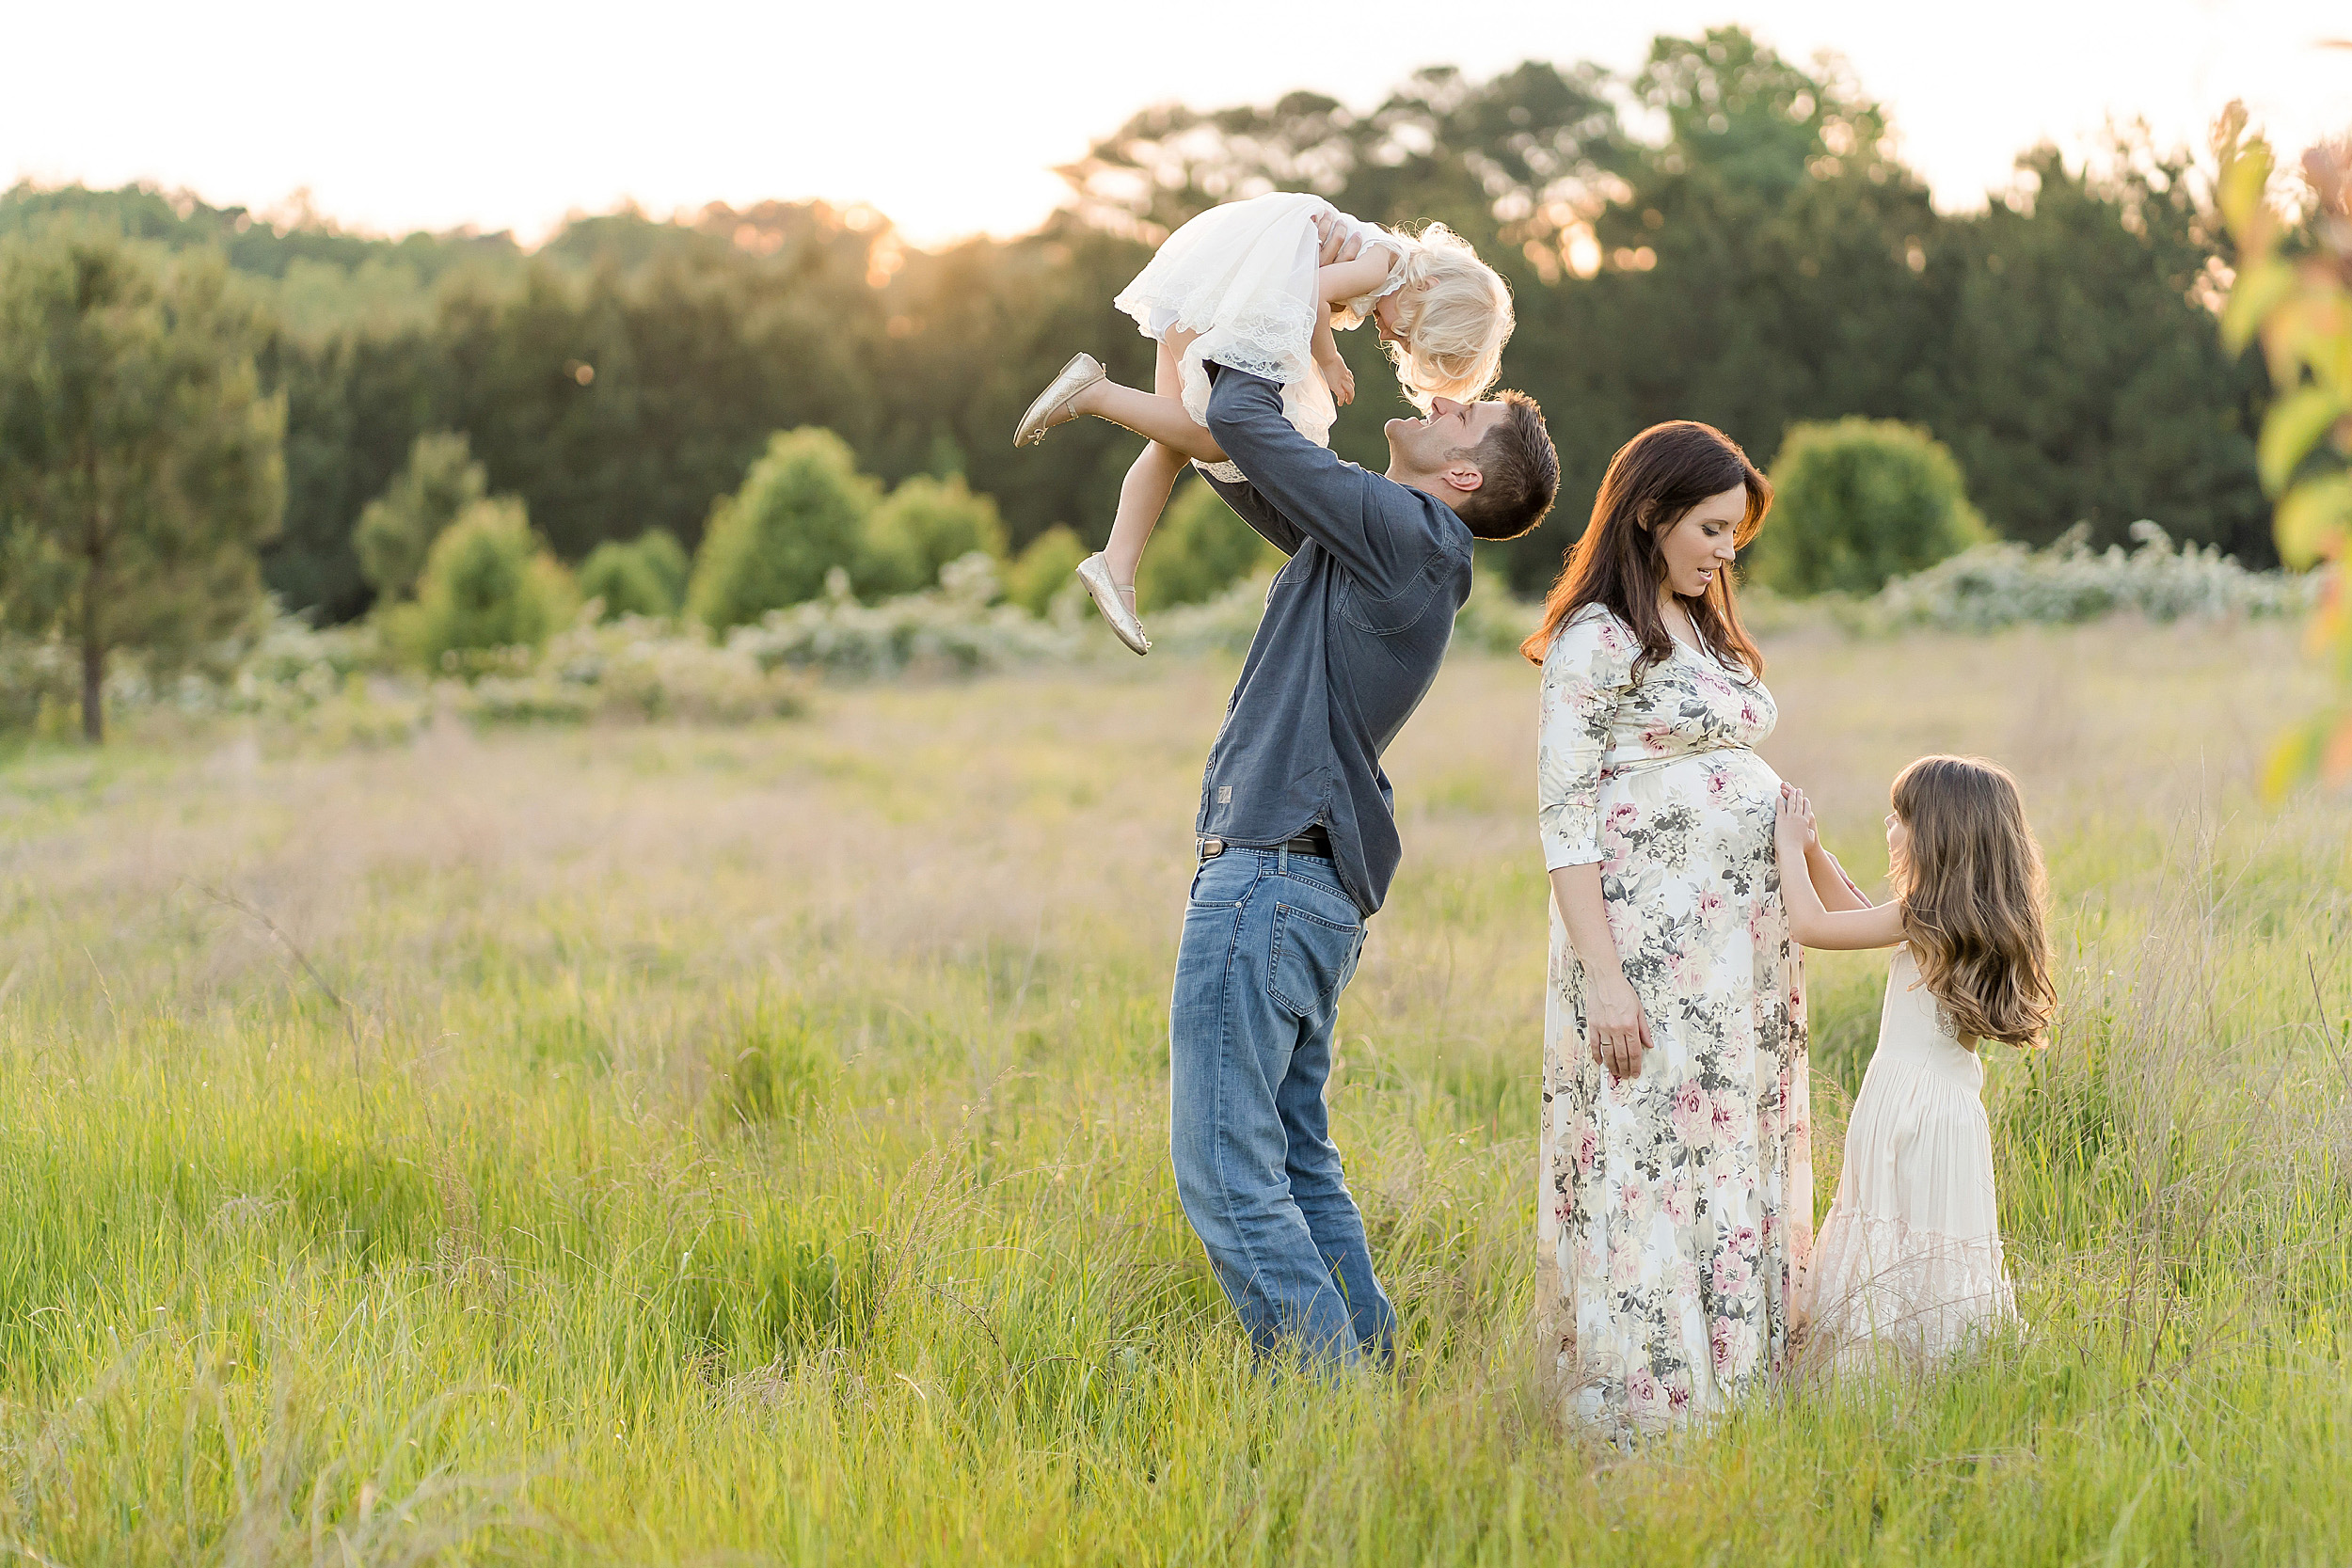 Family photo of four playing in an Atlanta field at sunset.  Dad is lifting his blonde haired daughter above his head while his brunette daughter touches her mother's pregnant belly.